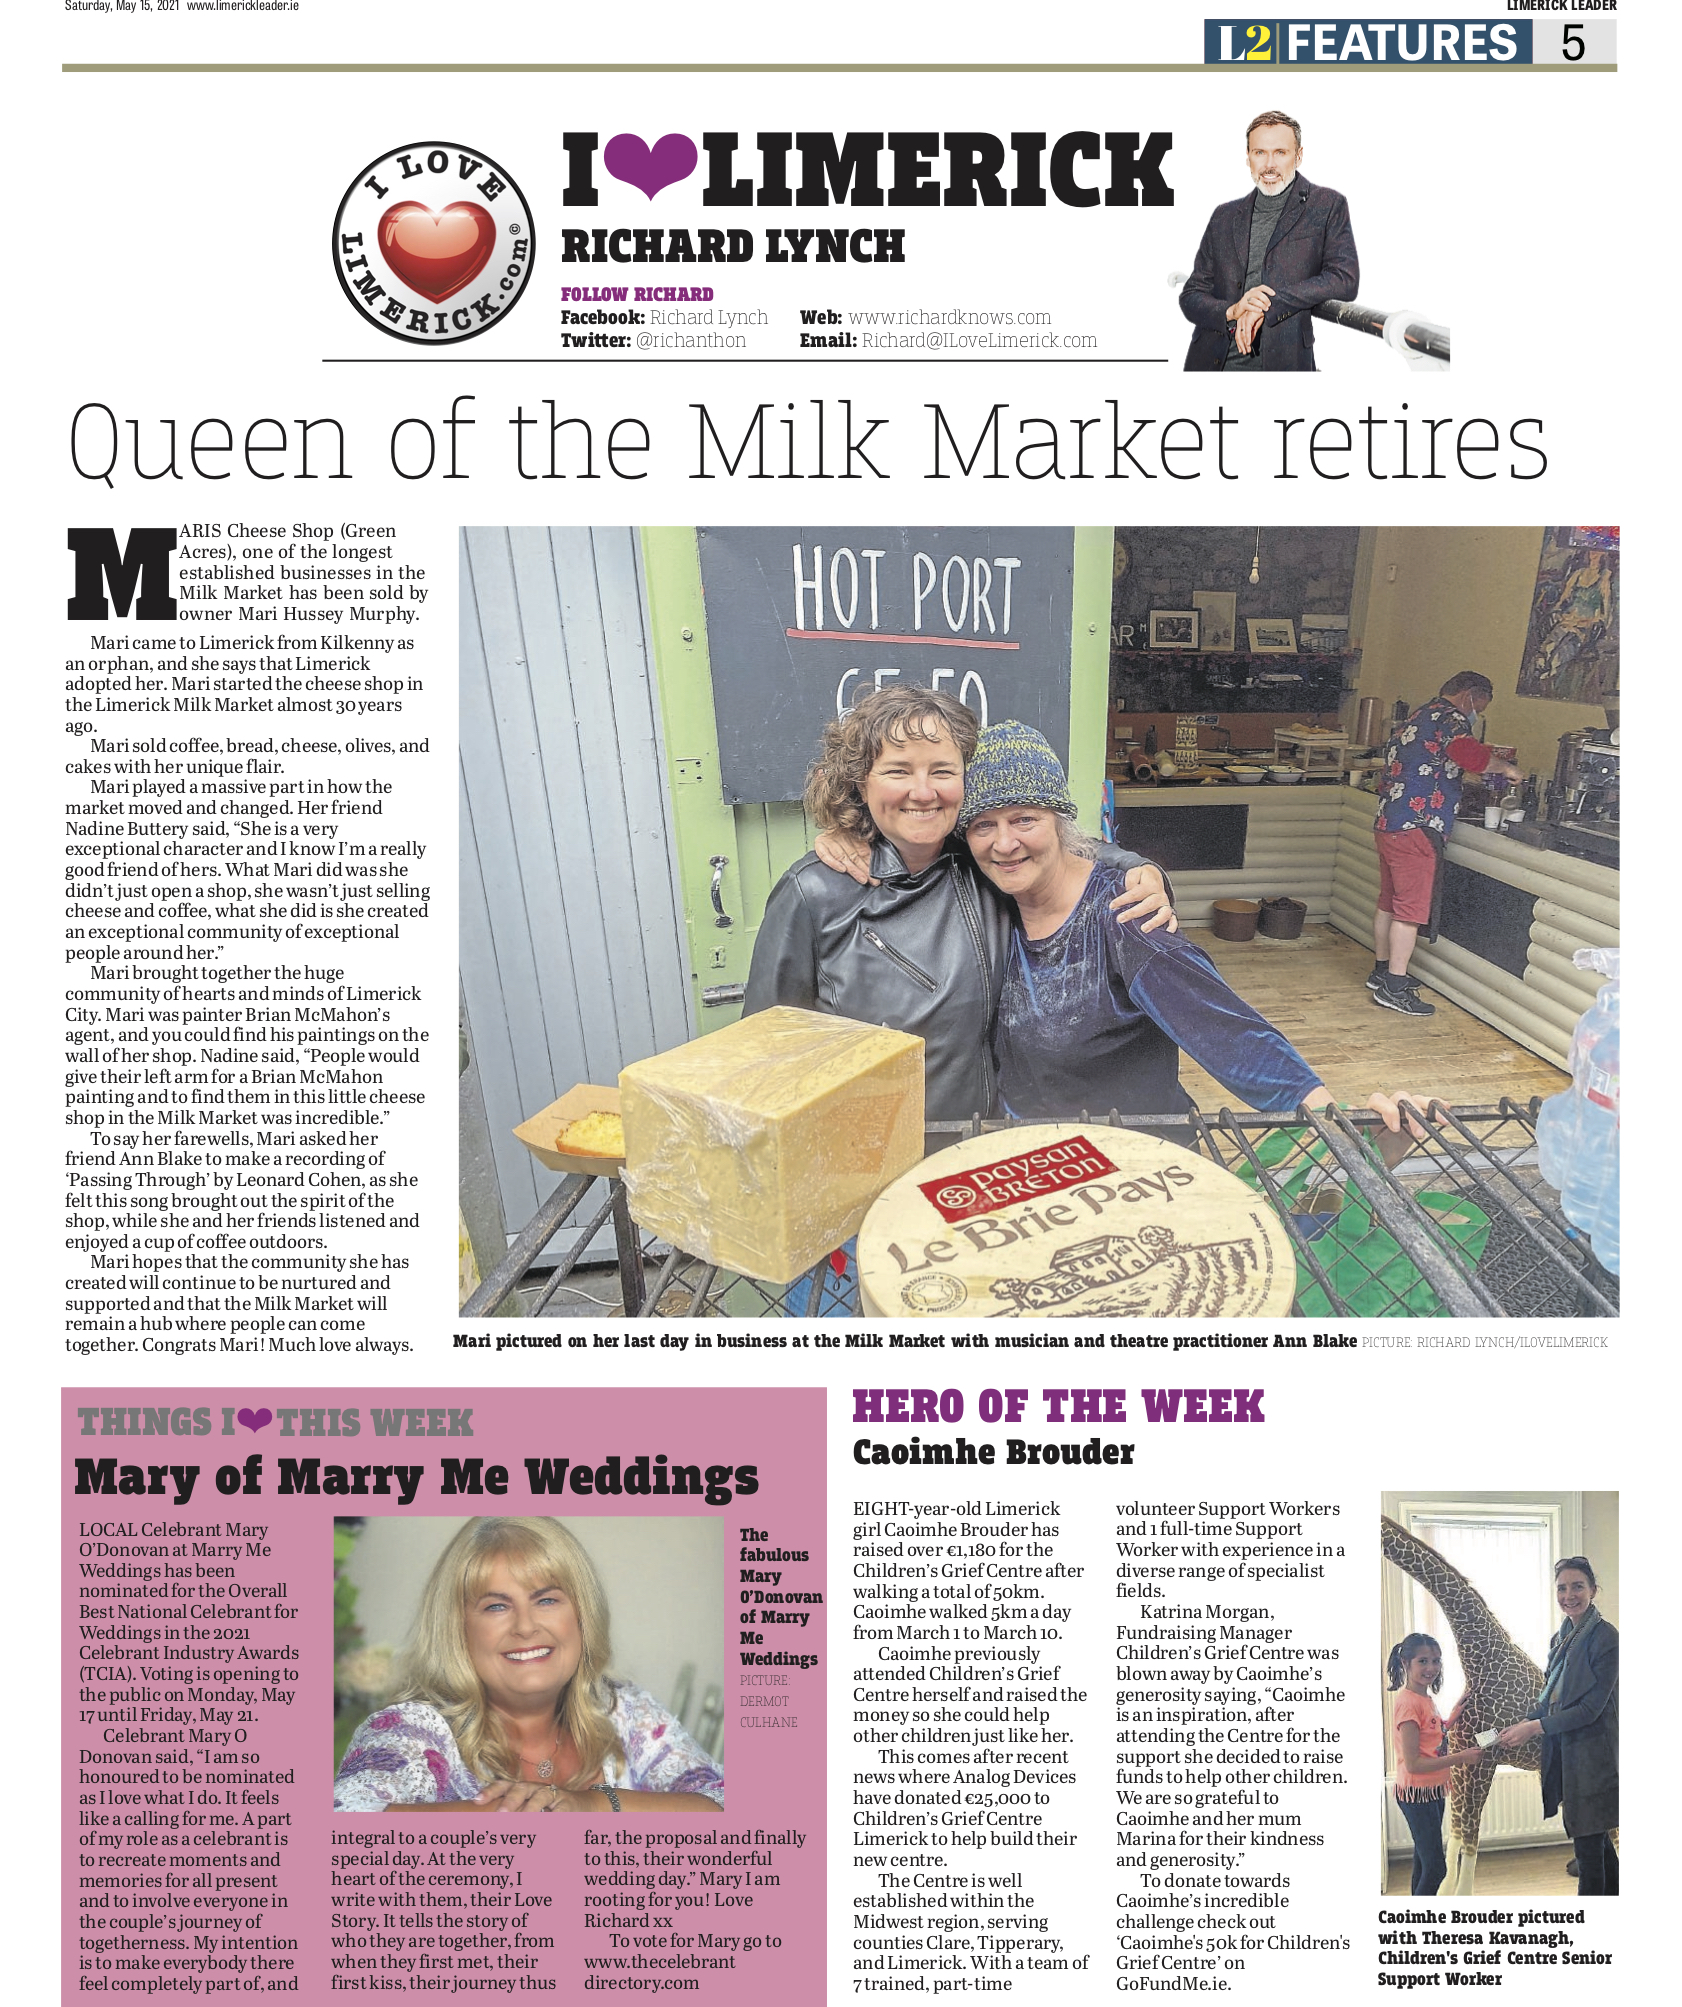 The Leader Column May 15 2021 - Queen of the Milk Market retires